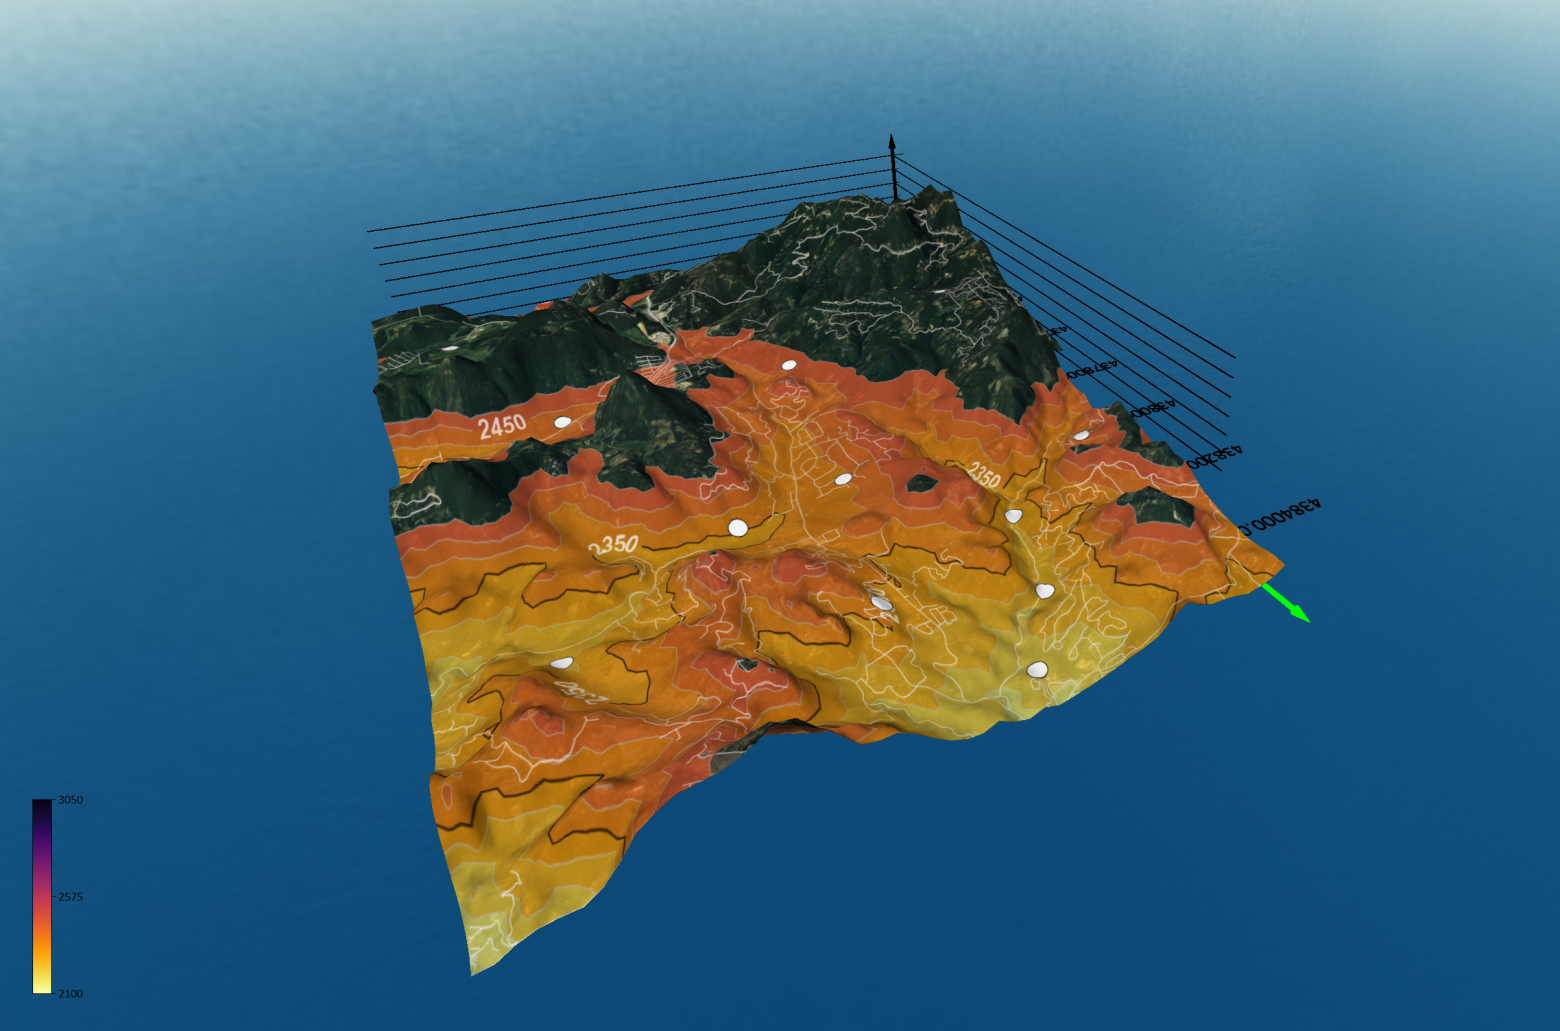 Site suitability model in Surfer's 3D View